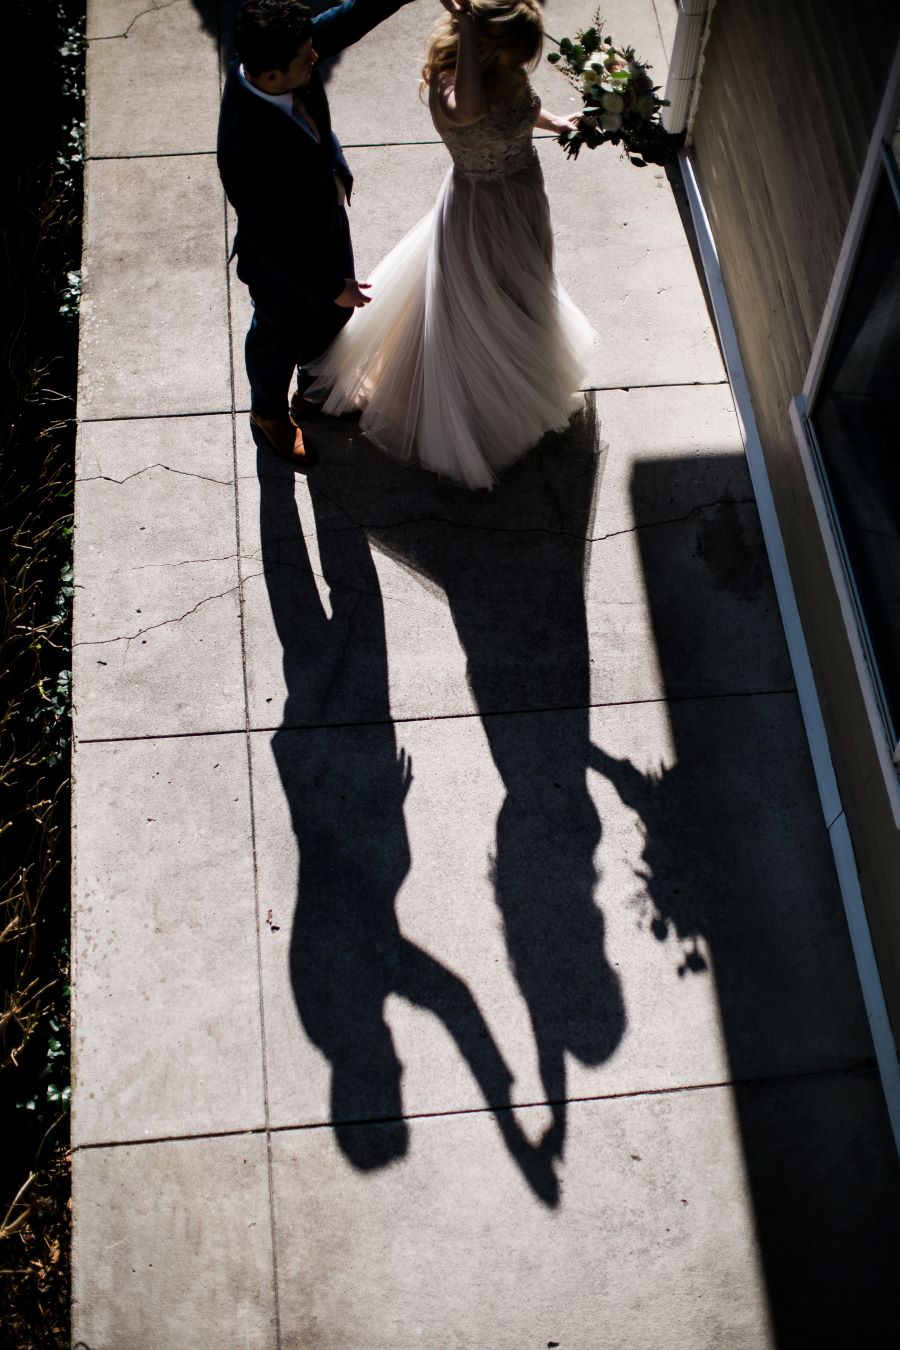 Shadow of groom twirling the bride on the sidewalk / Elopement / Spring / March / Dusty Rose